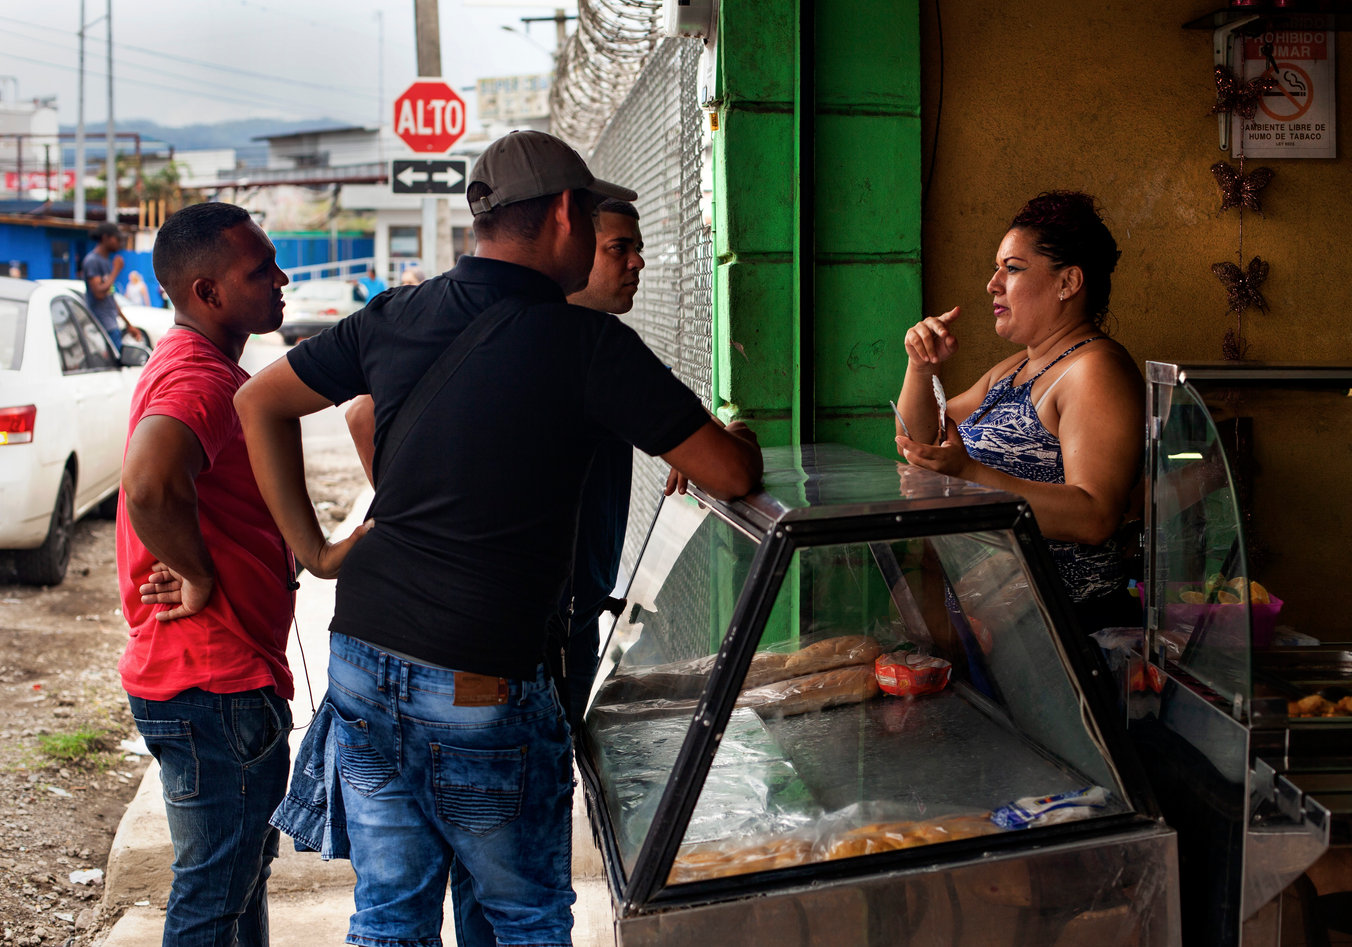 Yolanda, the owner of a meat store on the border, gives directions to the nearest bank to migrants passing through.